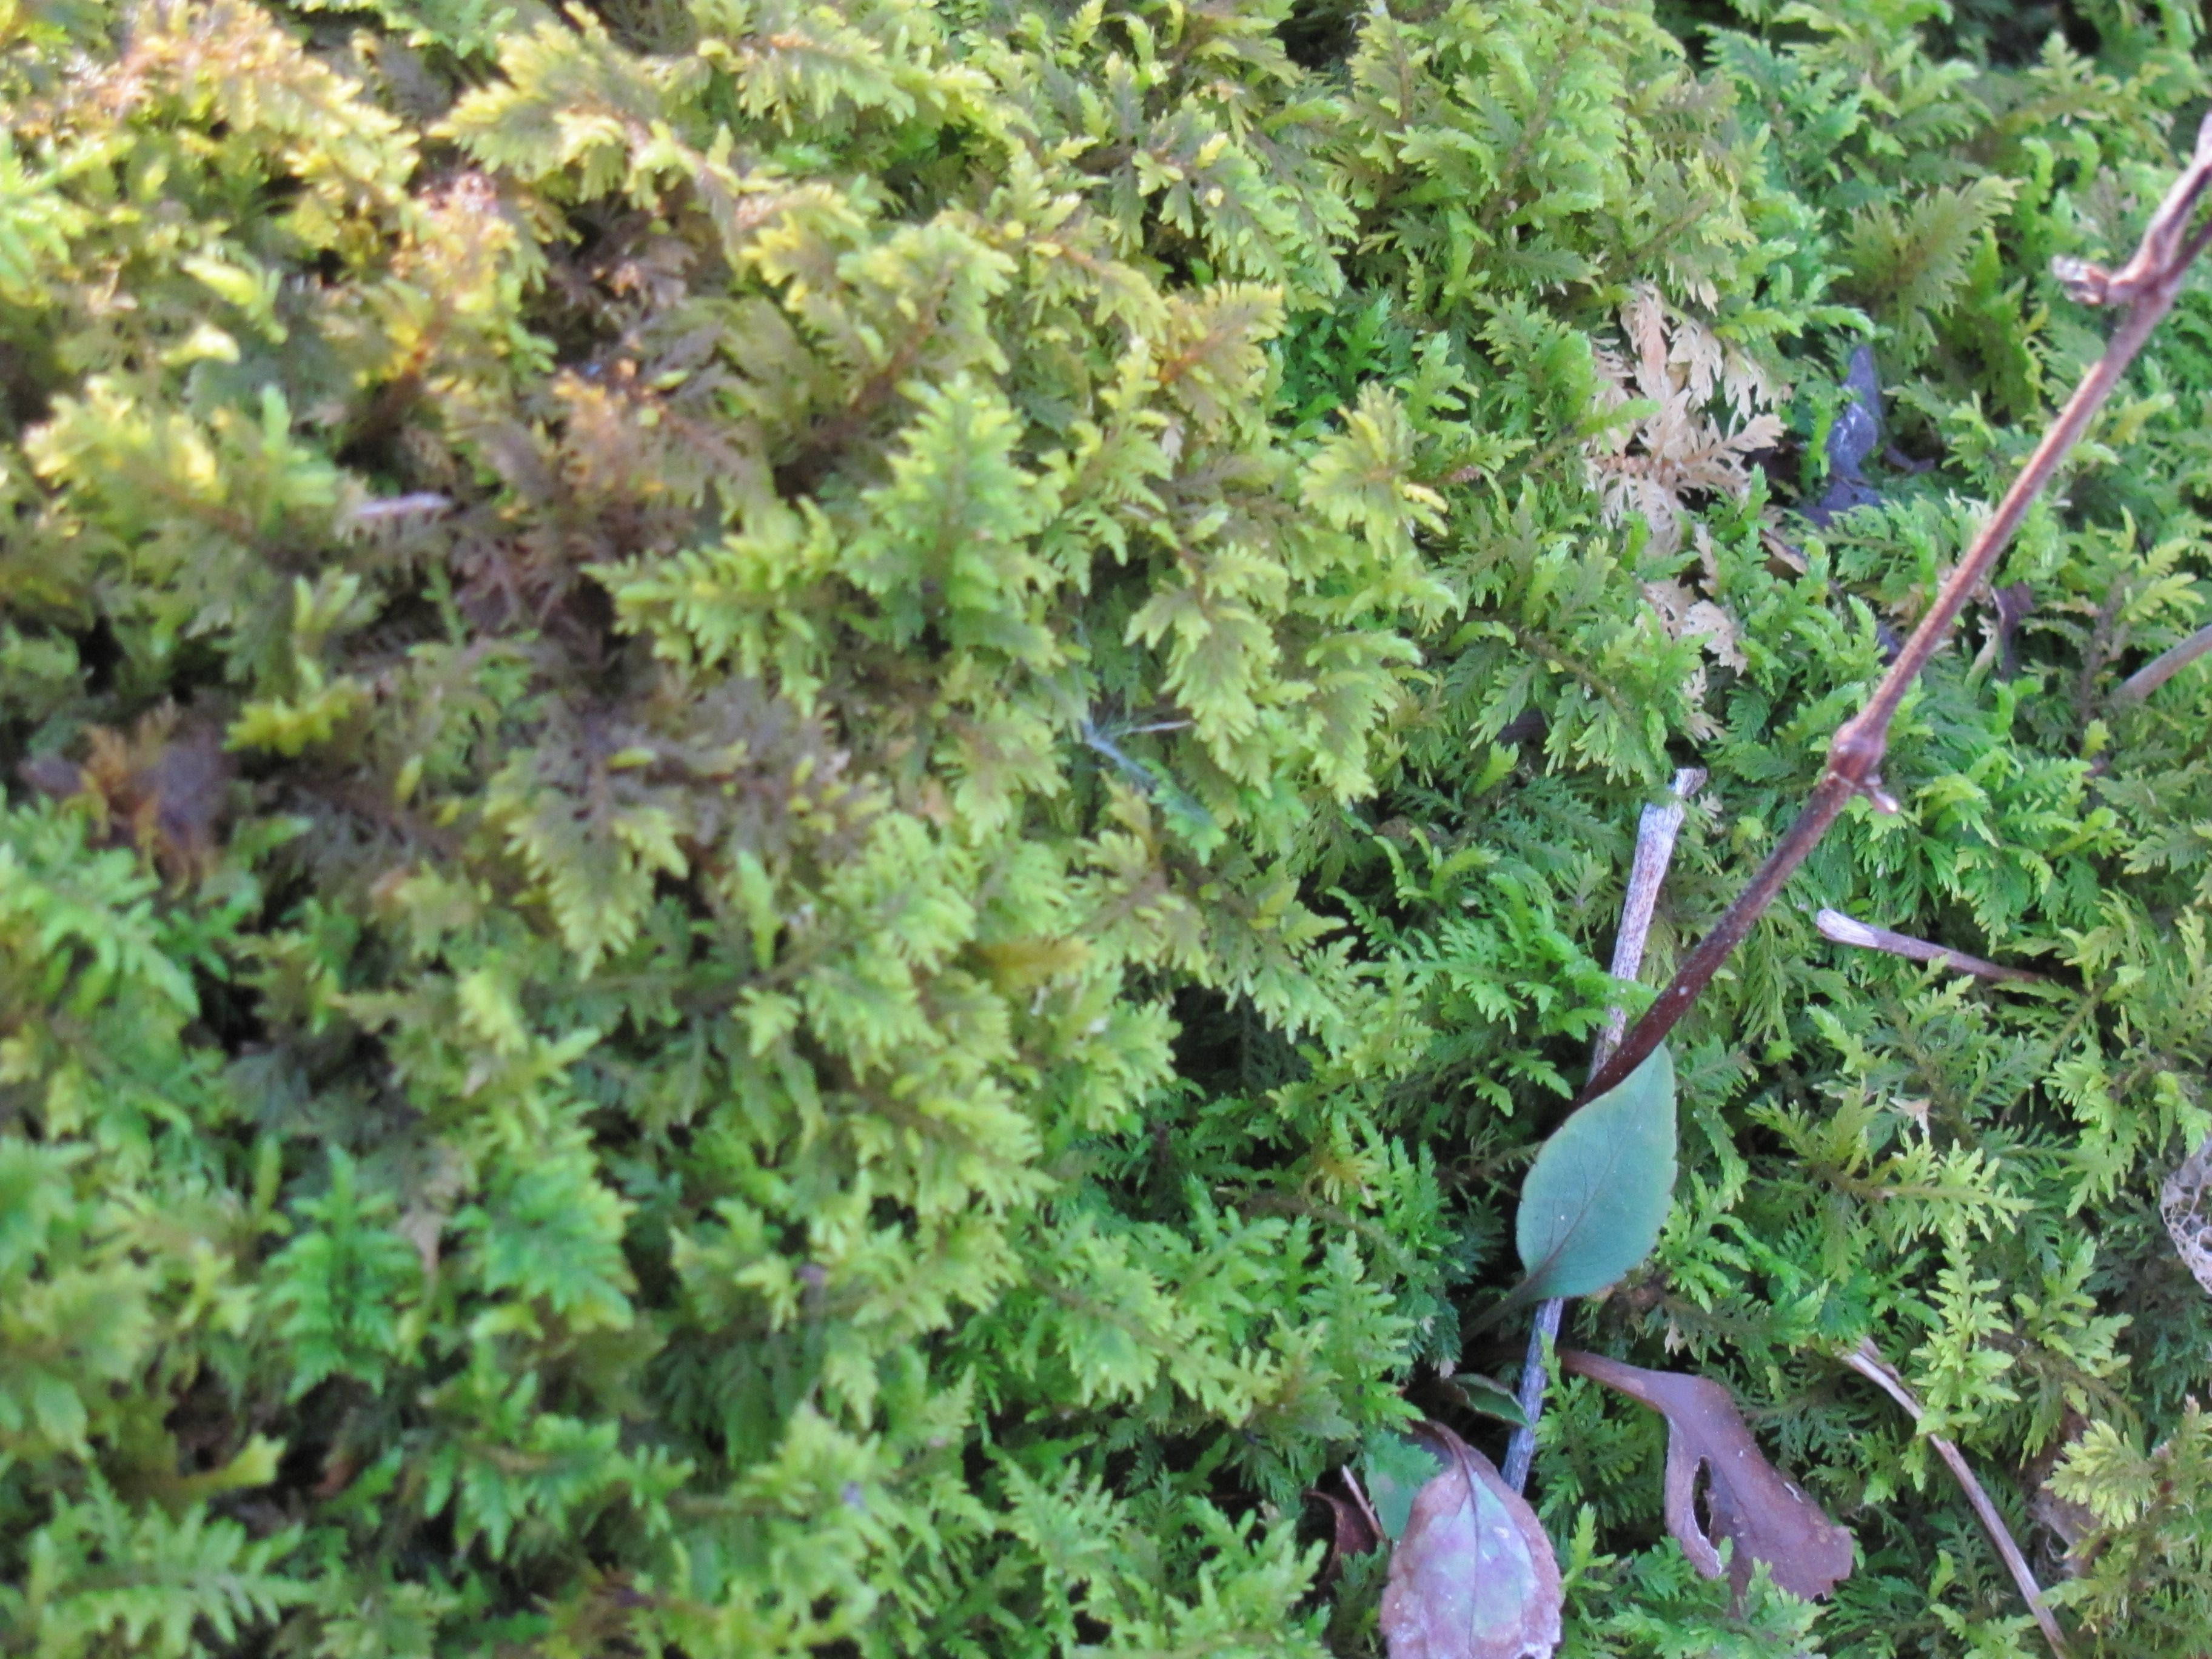 One of the many species of moss growing here on the Ridge. The tiny fern like leaves make it one of my favorites